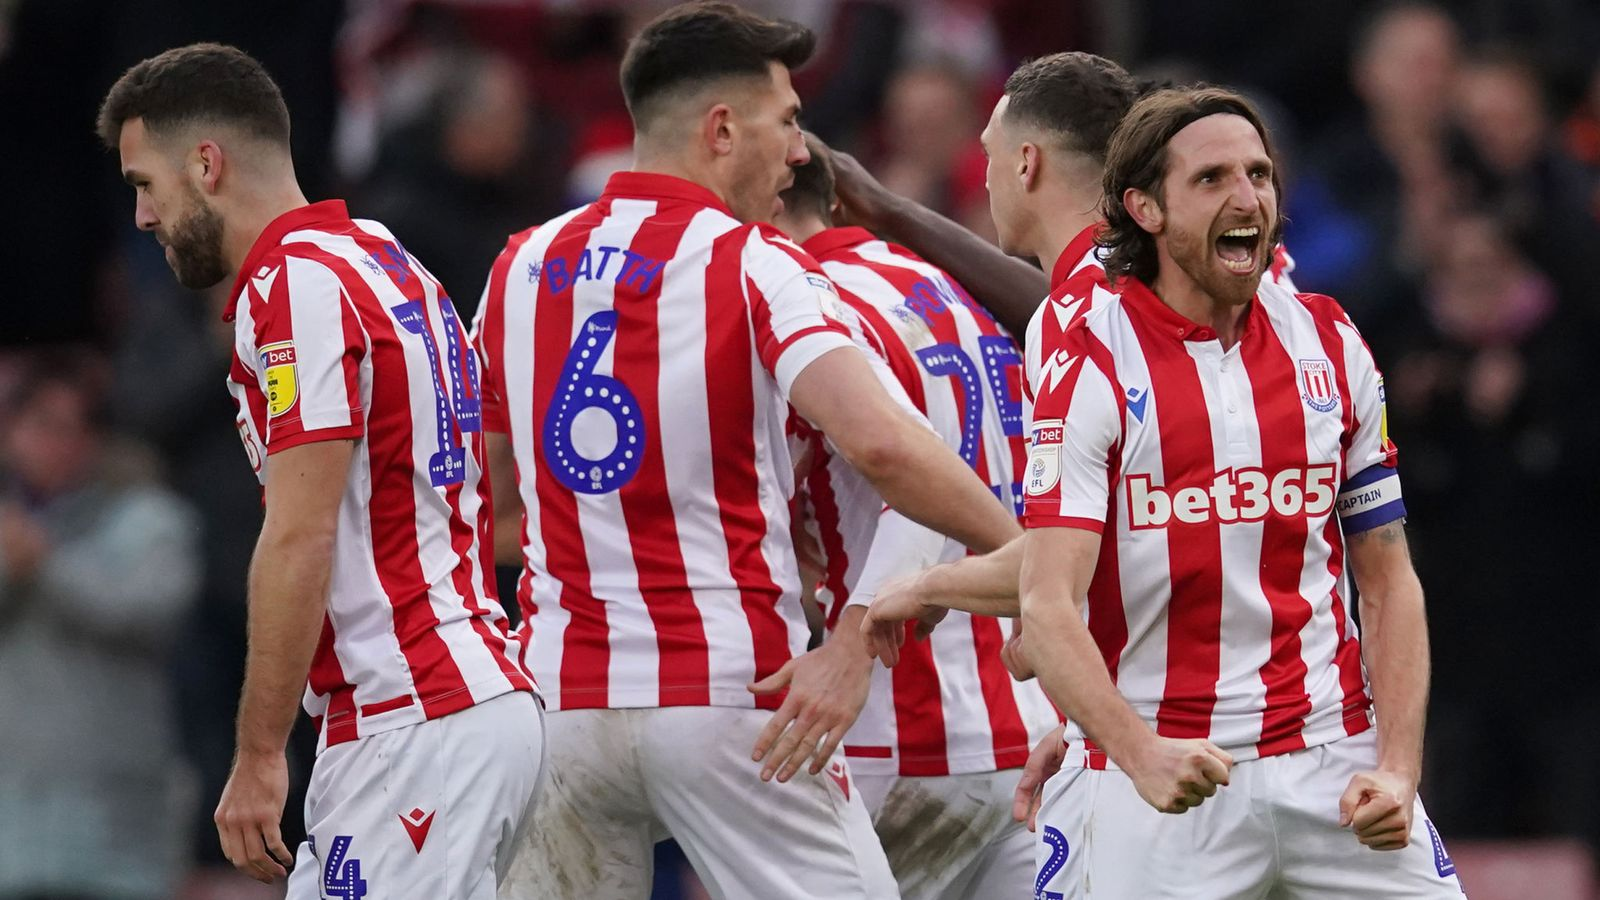 Stoke City 2 - 0 Cardiff City. Match Report